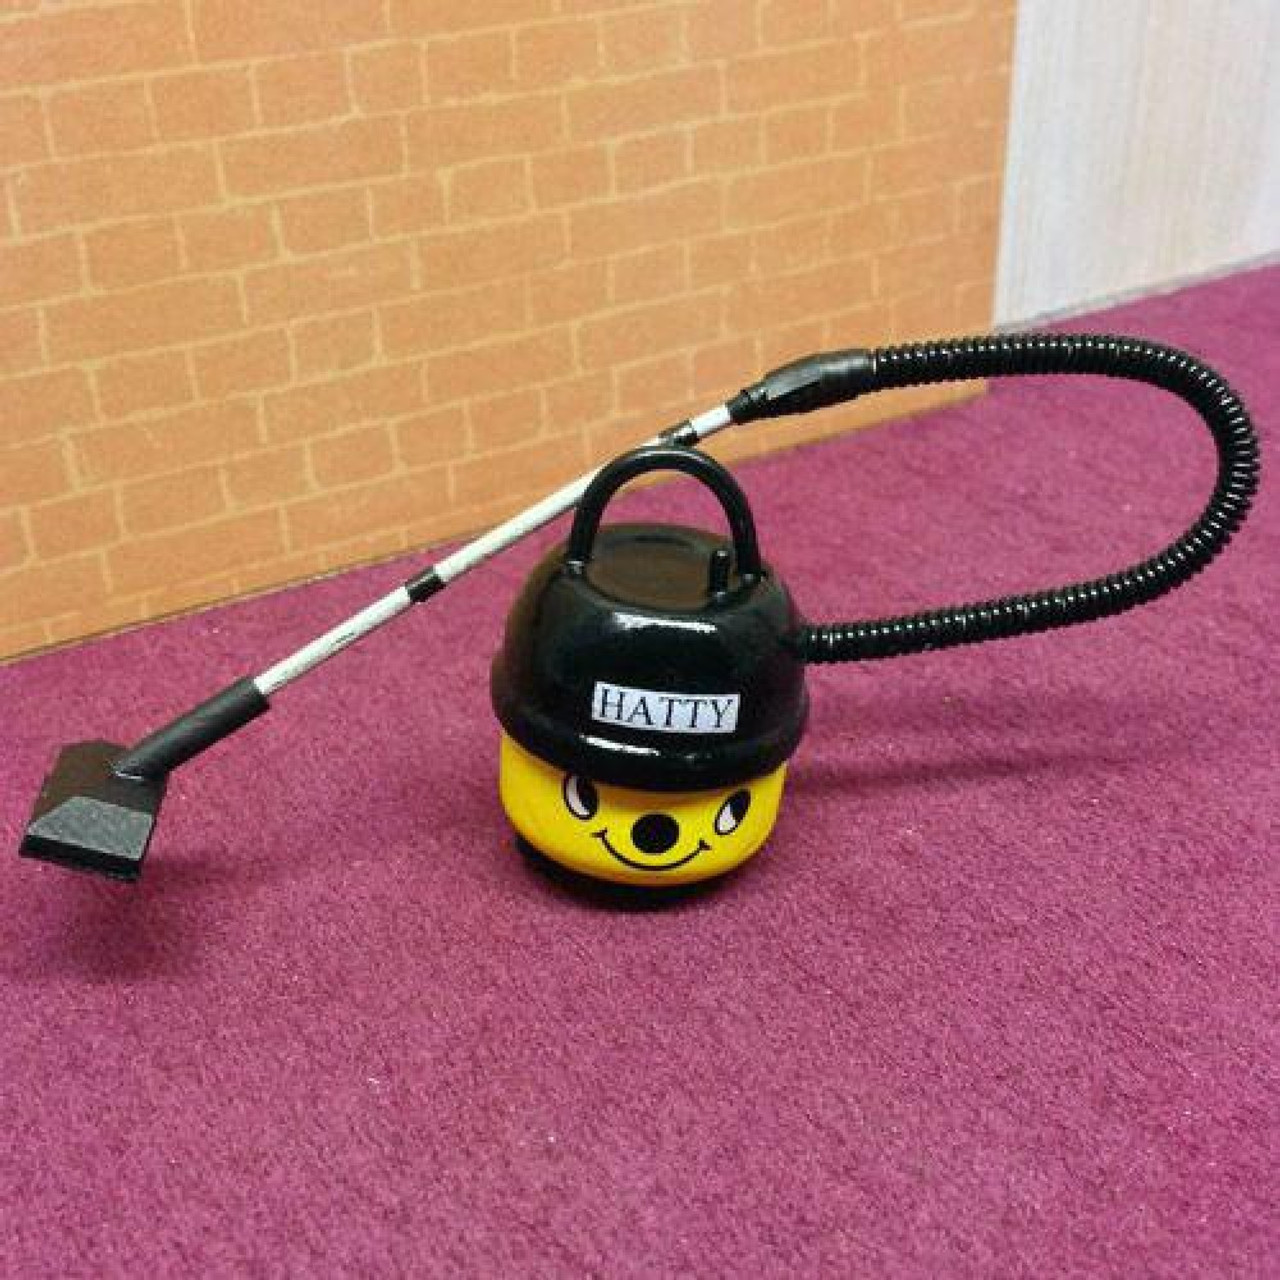 Hatty the vacuum cleaner 1242